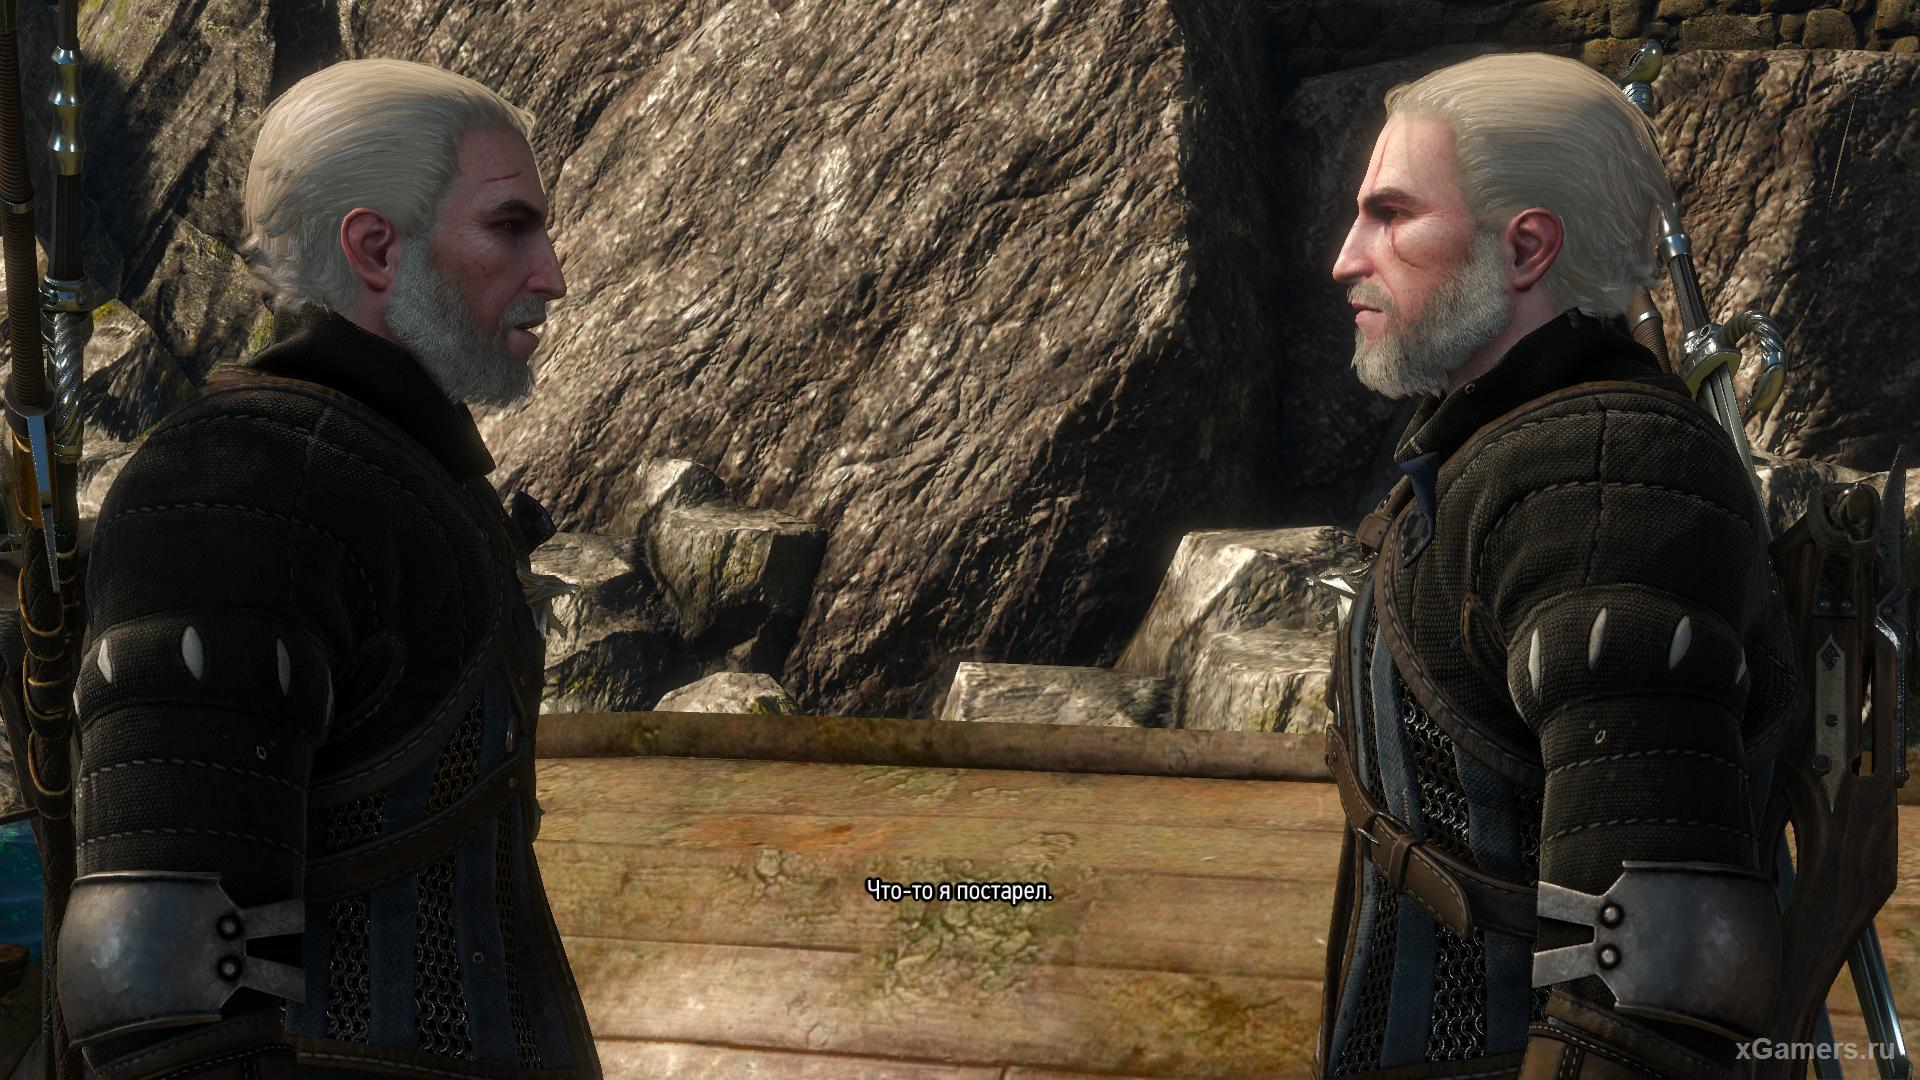 The quest : An Elusive Thief - Doppler became Geralt